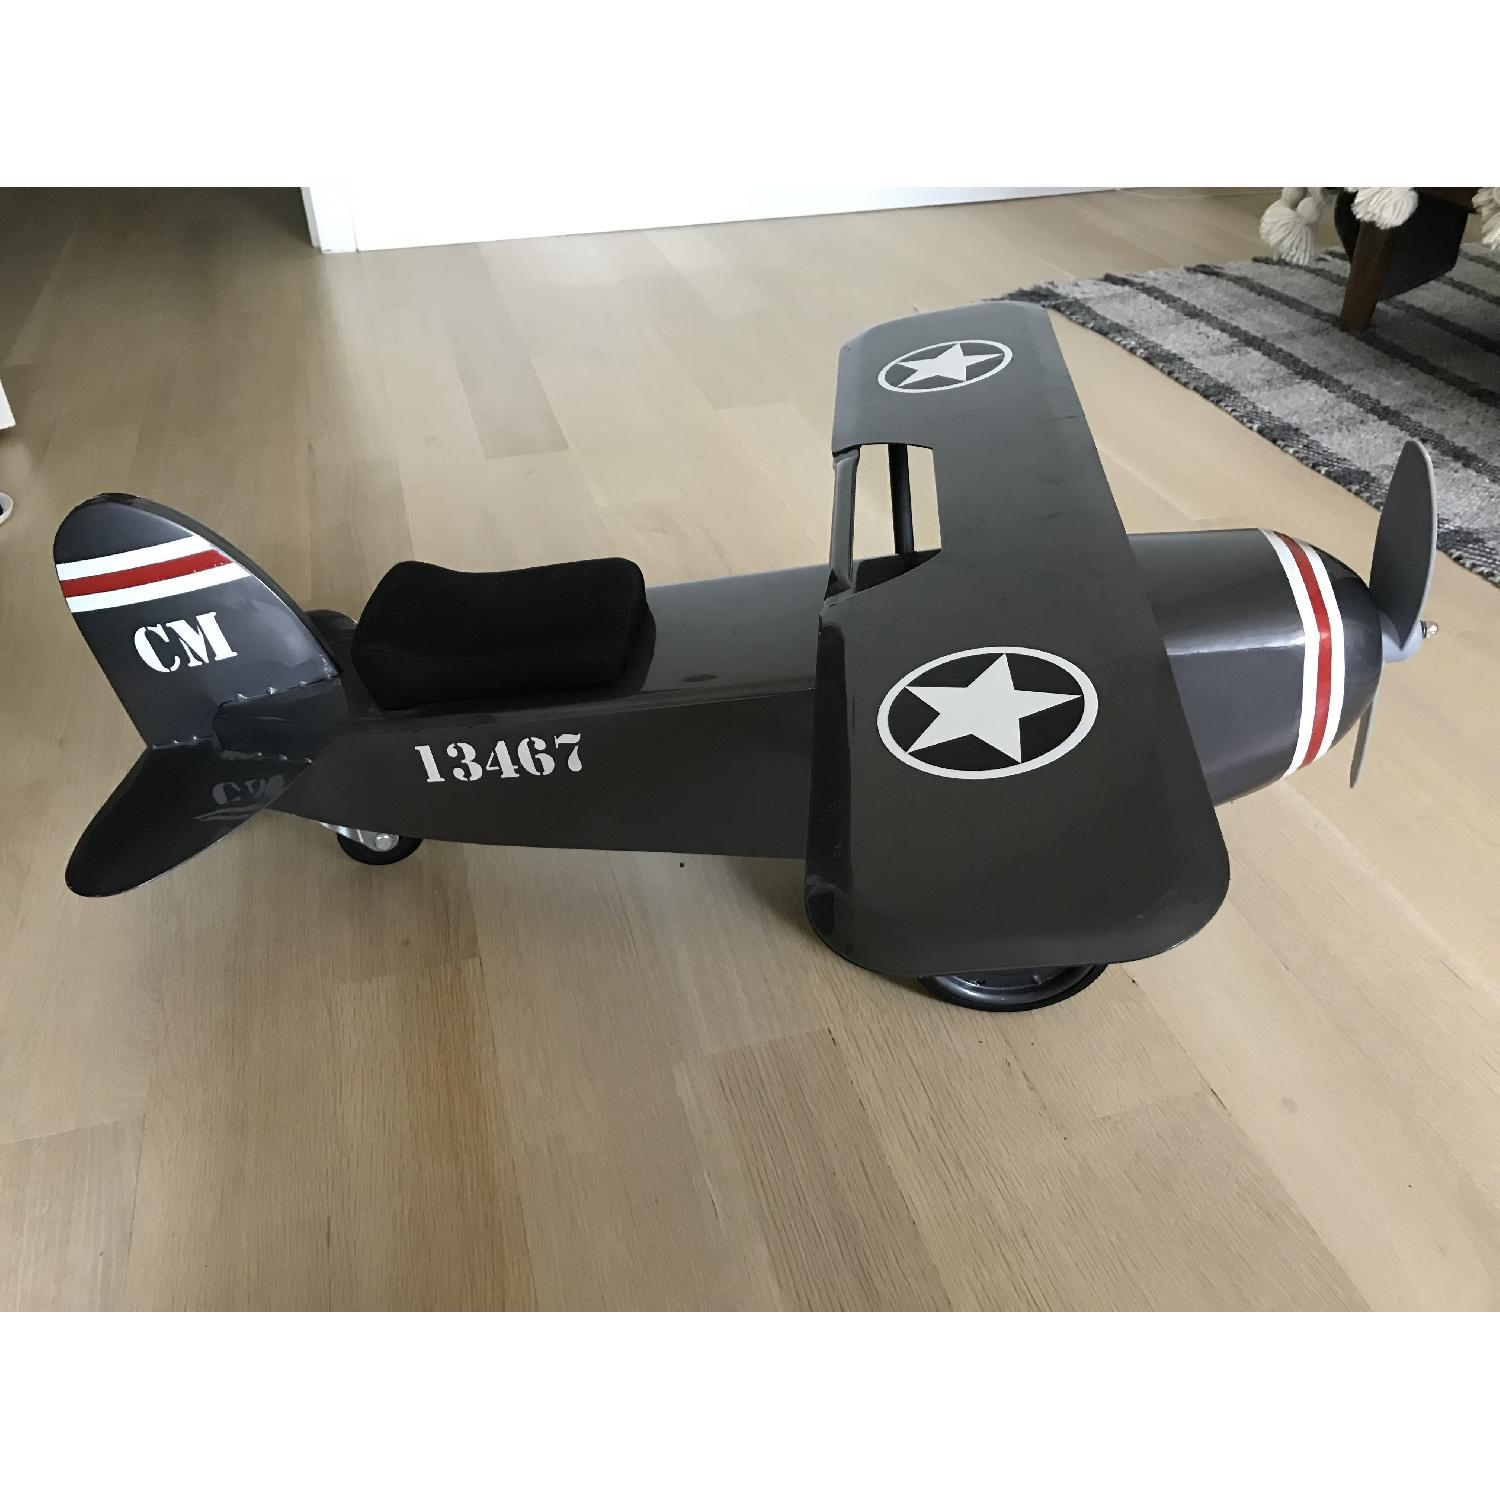 Restoration Hardware Baby and Child Vintage Army Plane Scoot-3